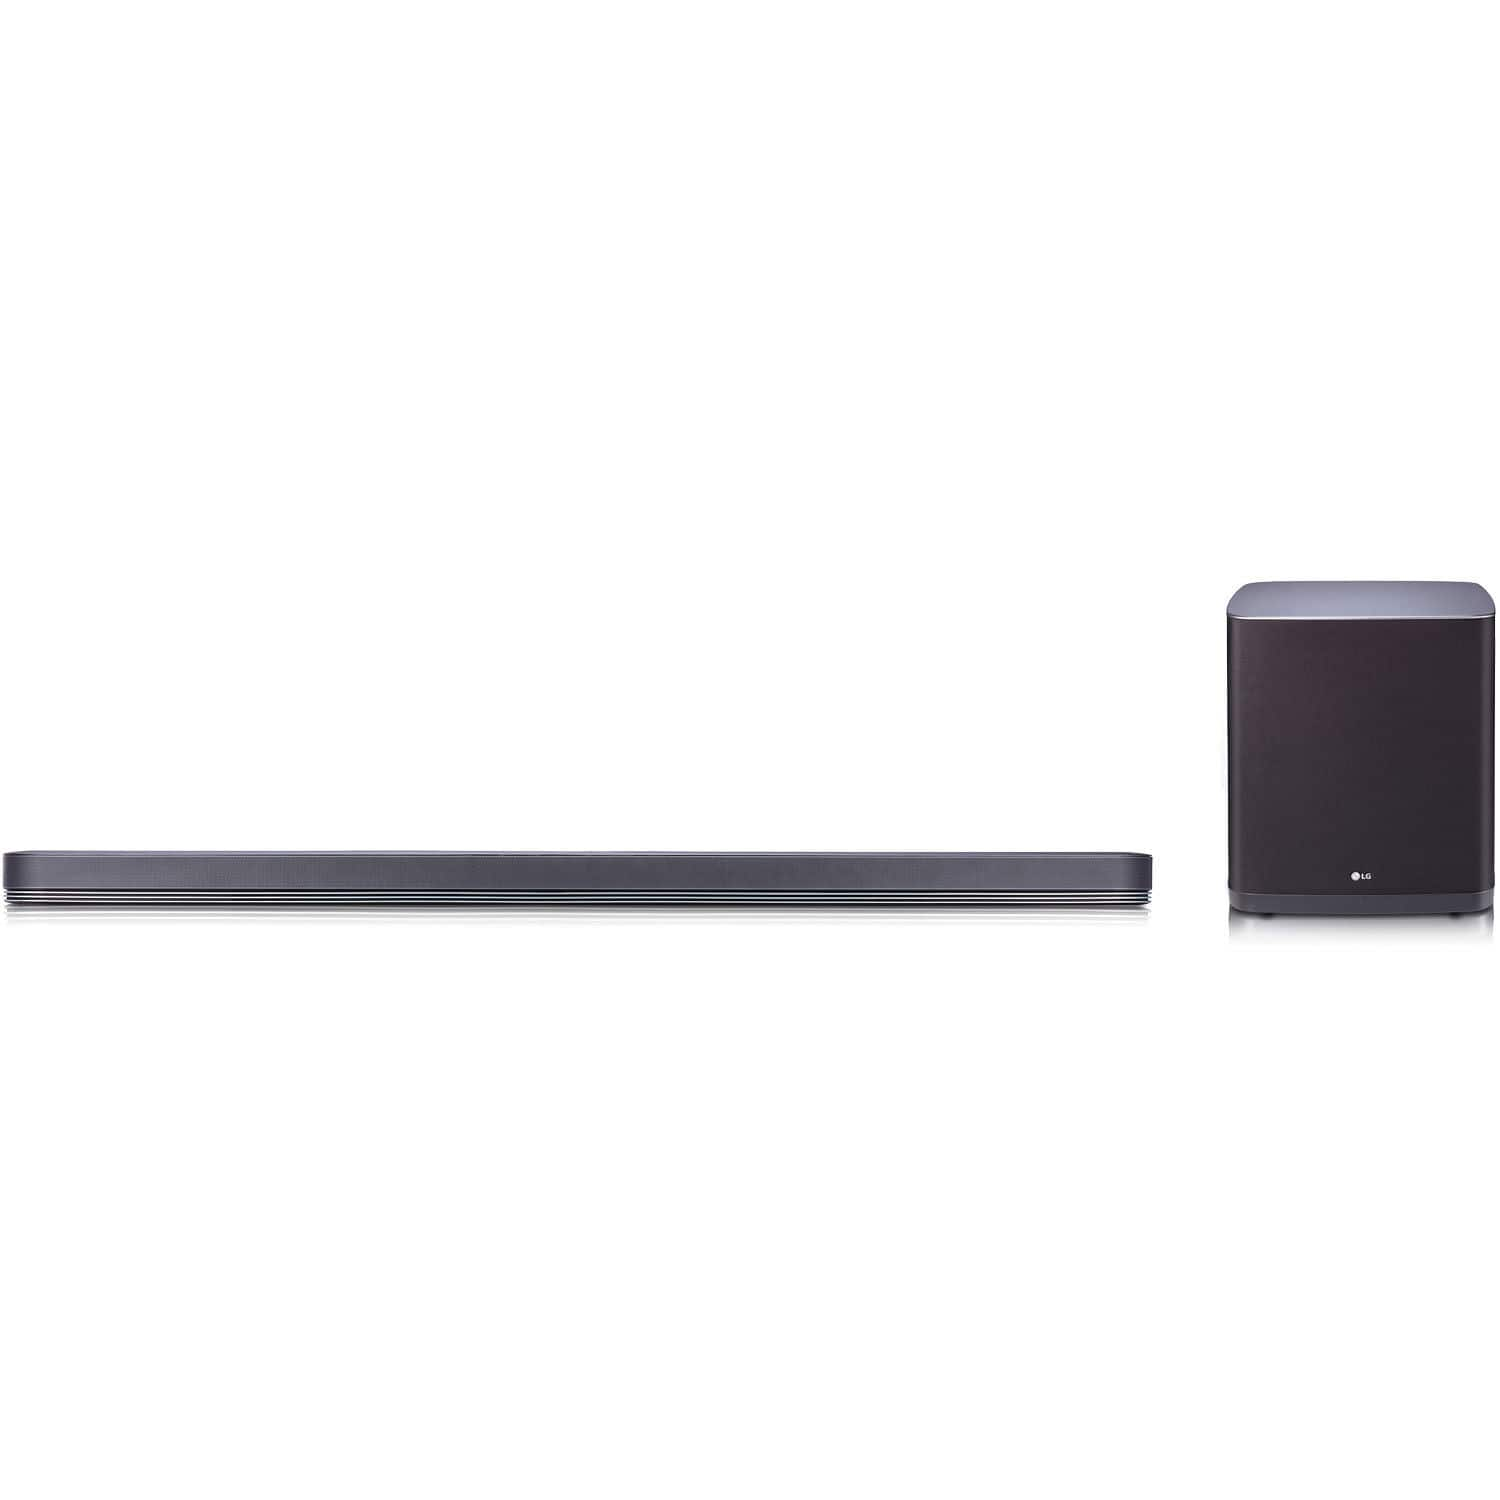 LG SJ9 sound bar 499.99 on eBay